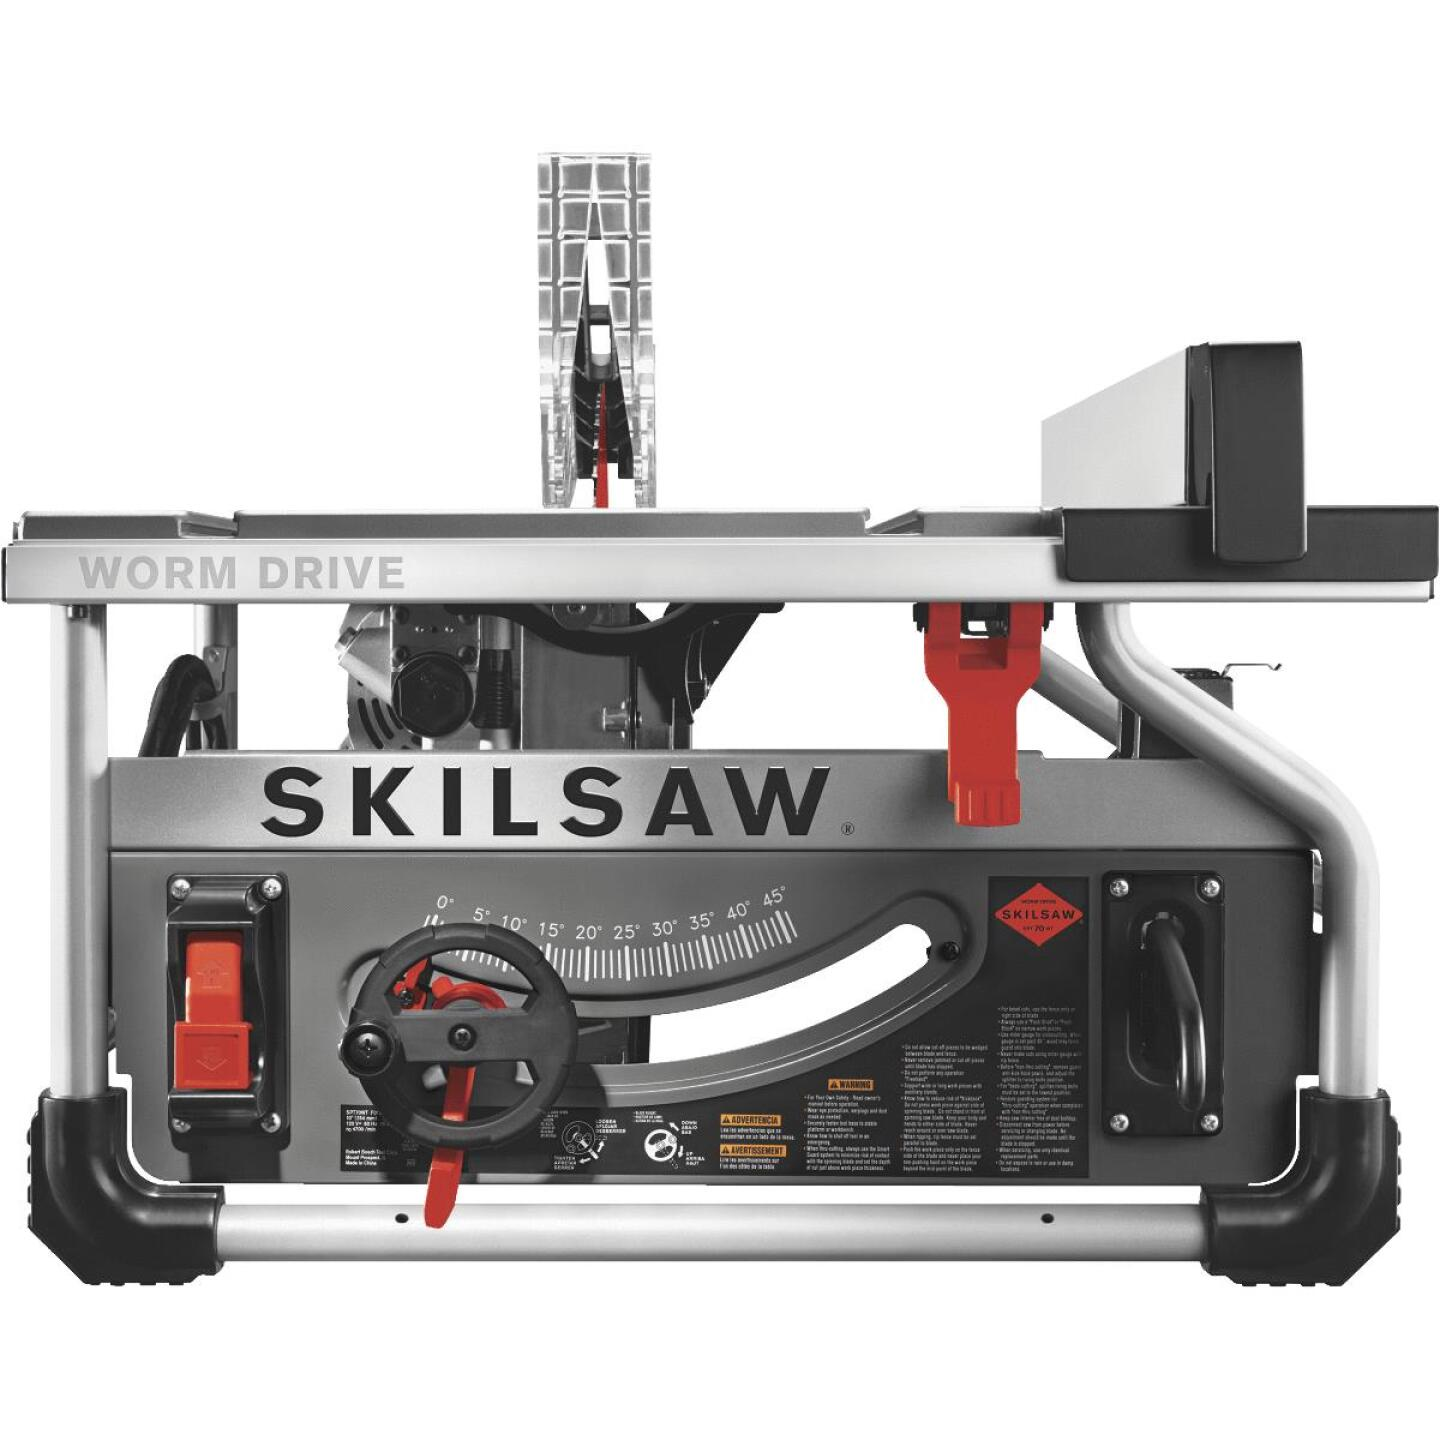 SKILSAW 15-Amp 10 In. Worm Drive Table Saw Image 1